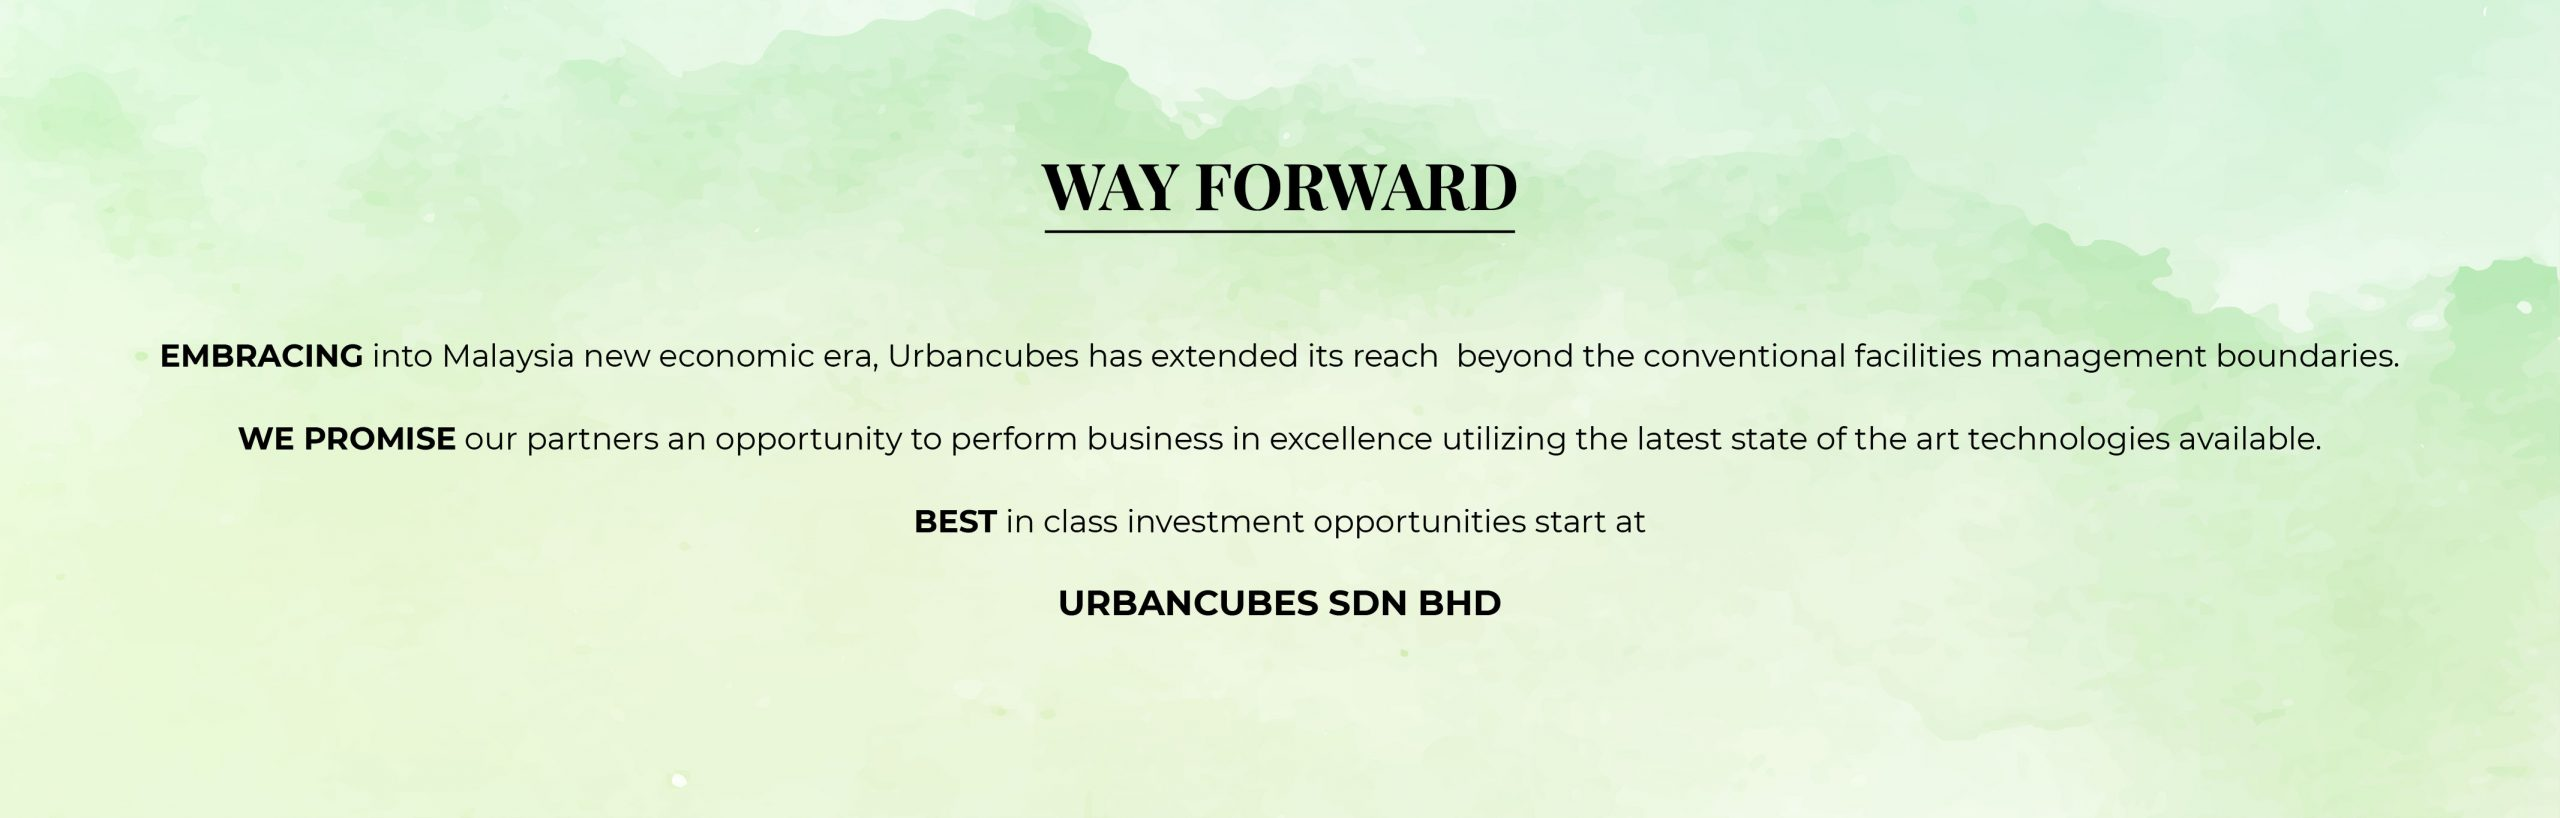 Embracing into Malaysia new economic era, Urbancubes has extended its reach beyond the conventional facilities management boundaries.